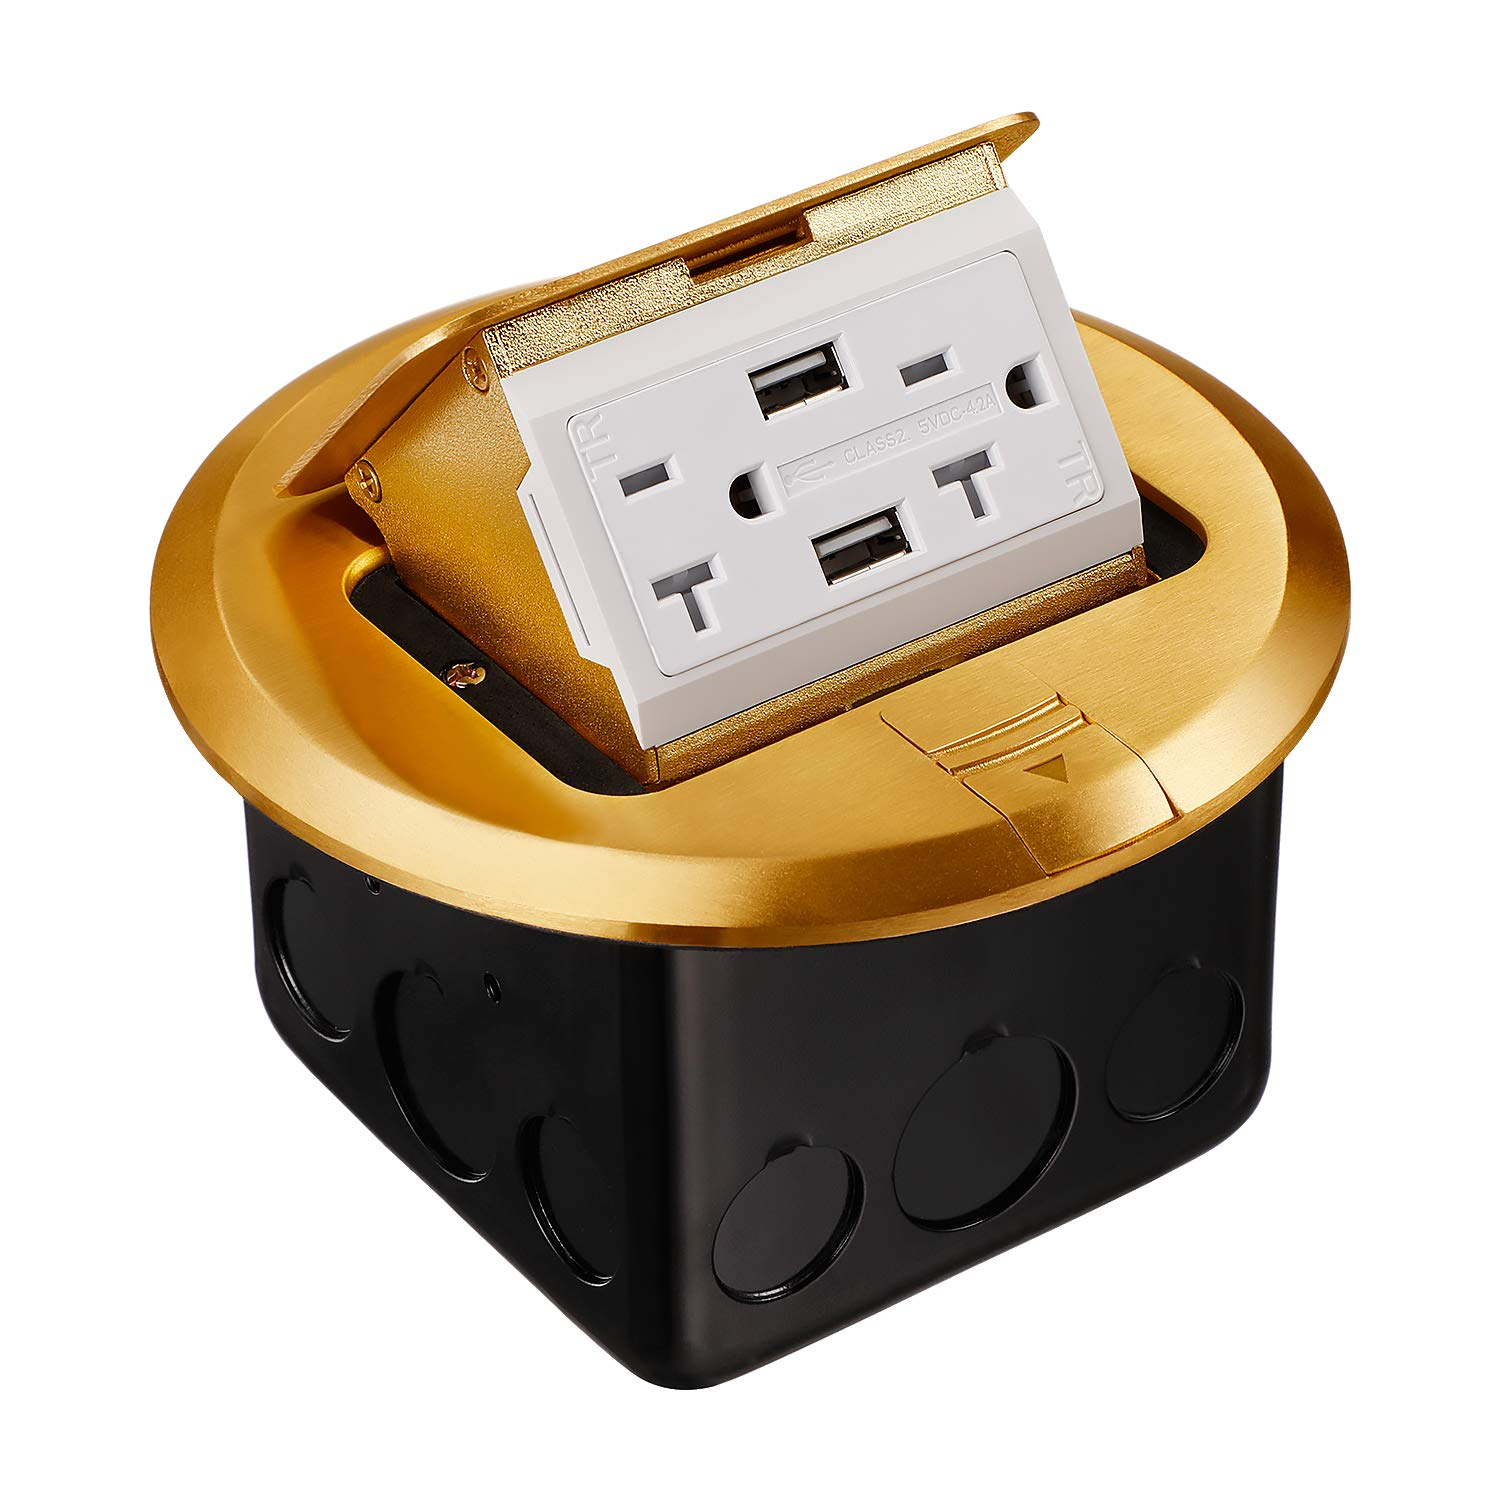 TORCHSTAR Pop-up Floor Outlet Box with Brass Cover, UL Listed Countertop Box with 20A 2AC Receptacles & 2 USB Ports, Electrical Outlet with Junction Box, Damping Spring & Anti Electric Shock Plate